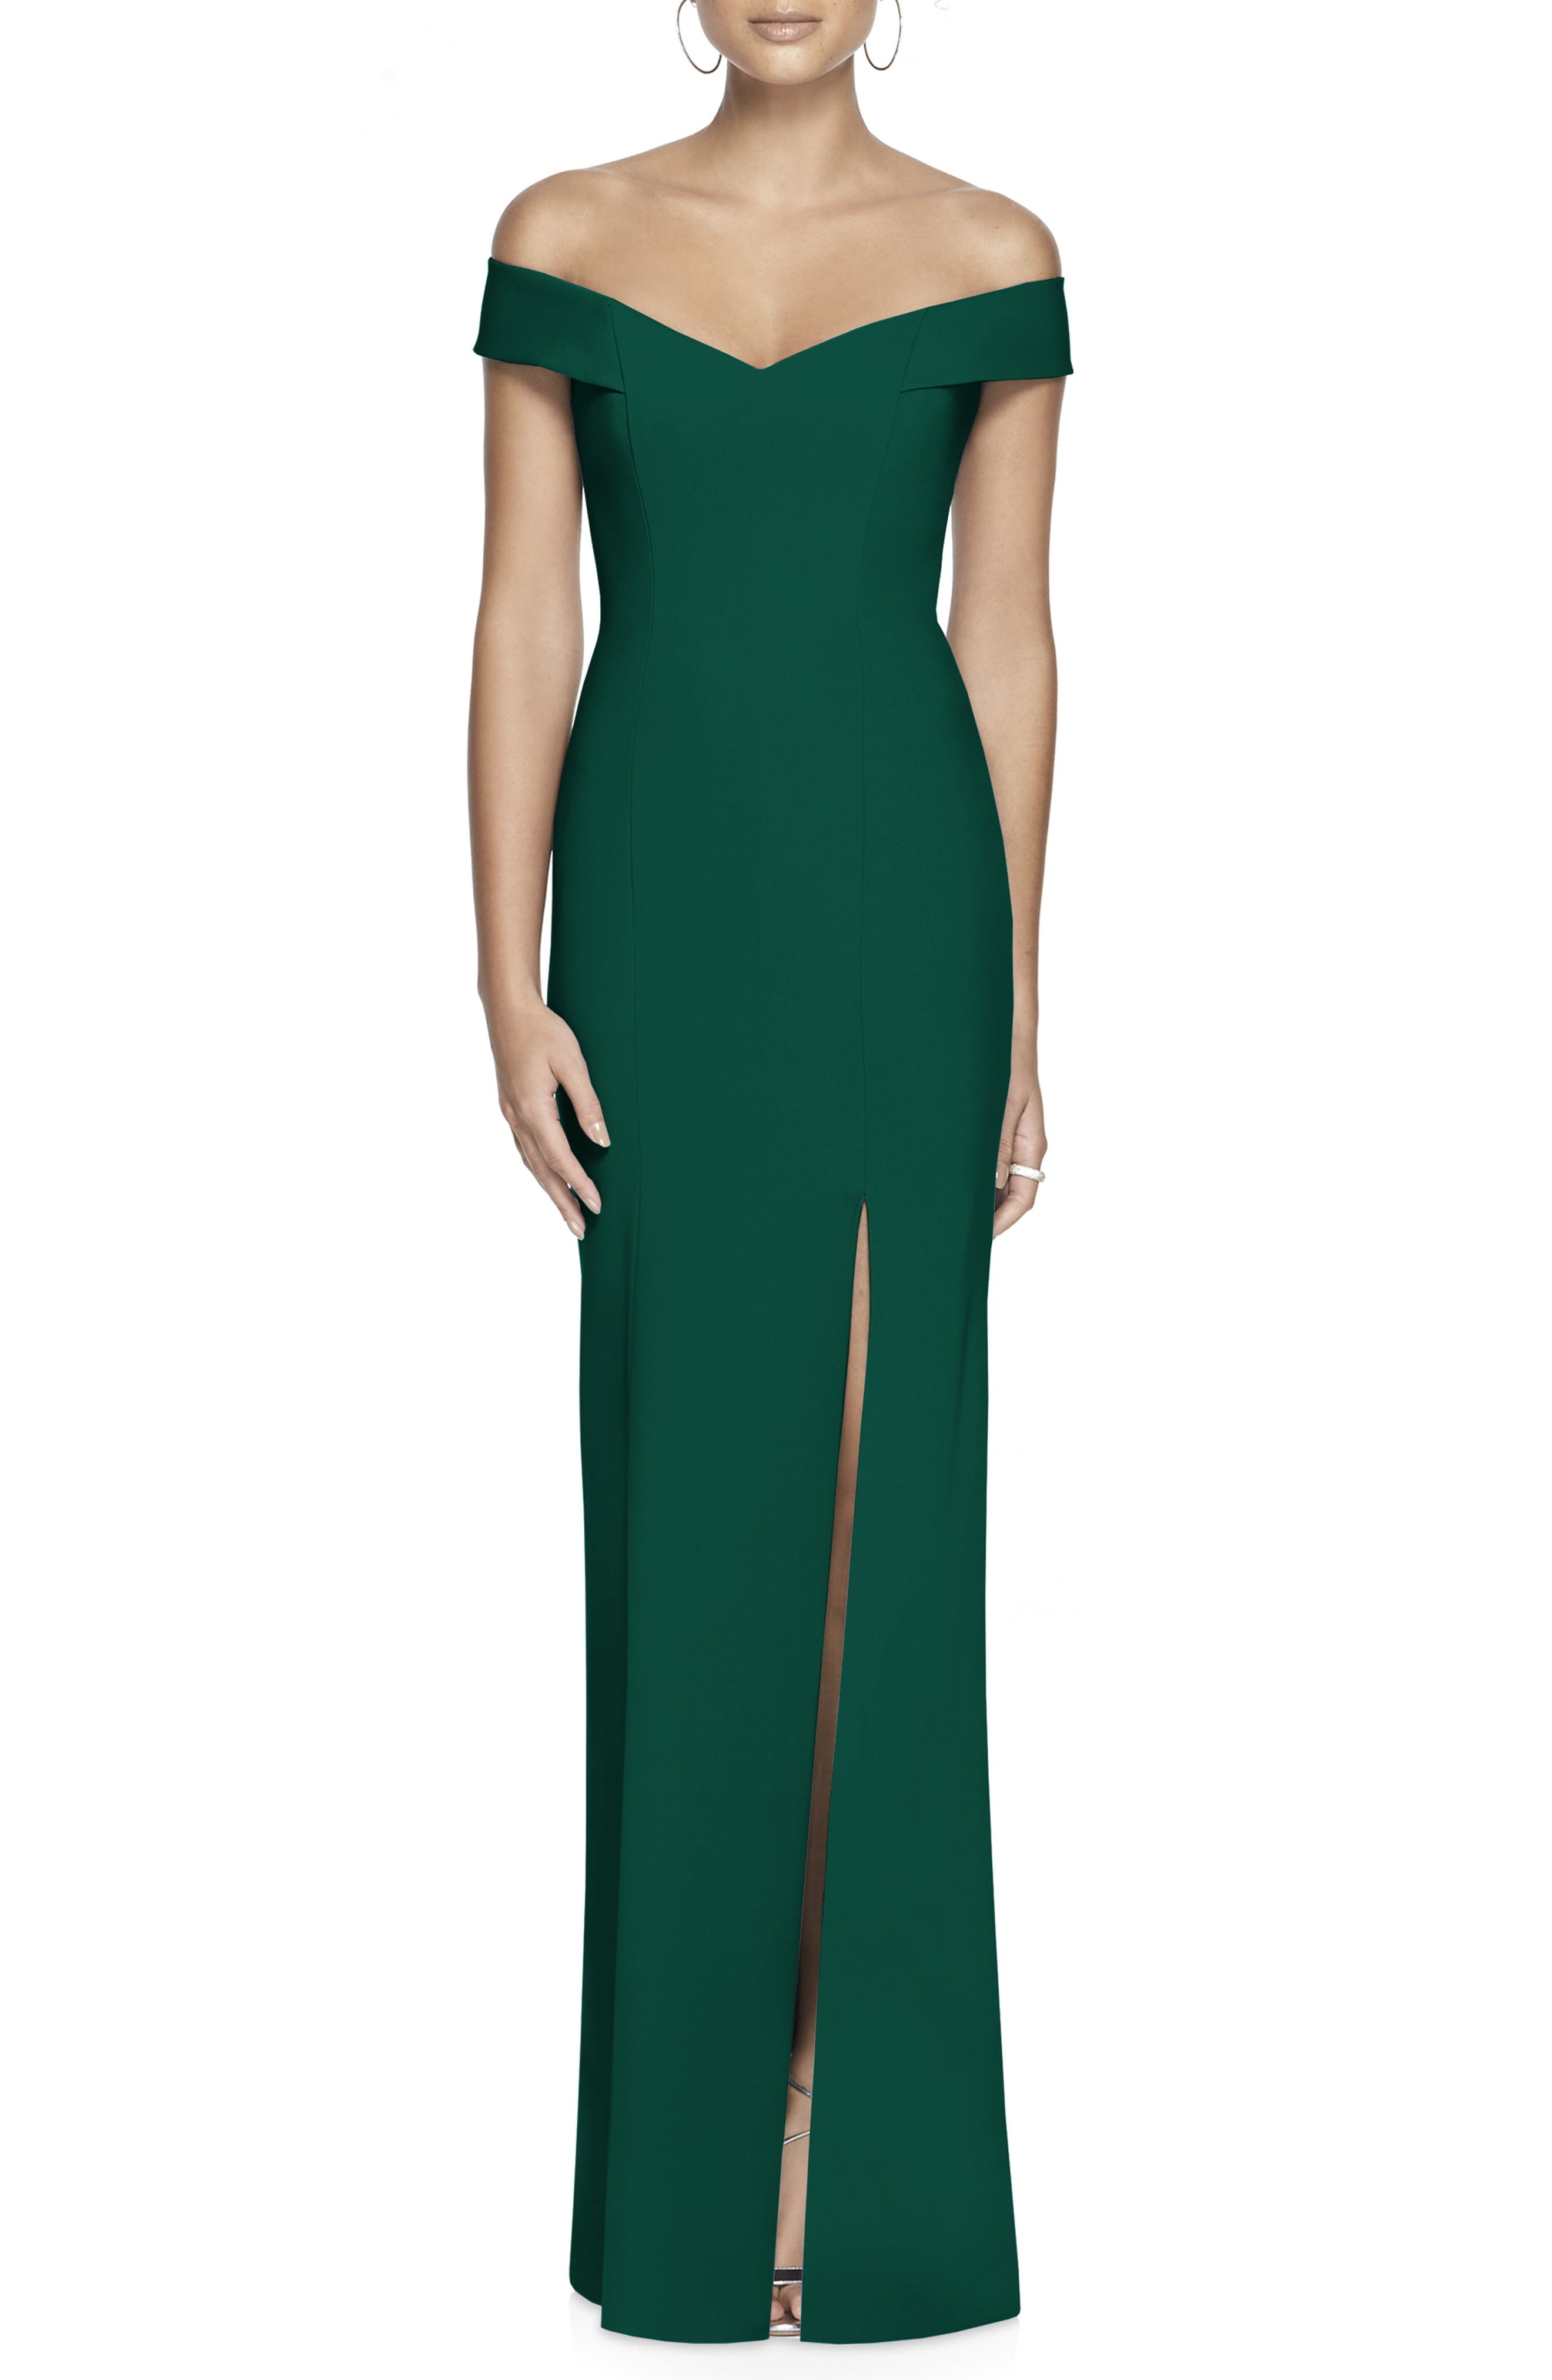 DESSY COLLECTION, Off the Shoulder Crossback Gown, Main thumbnail 1, color, HUNTER